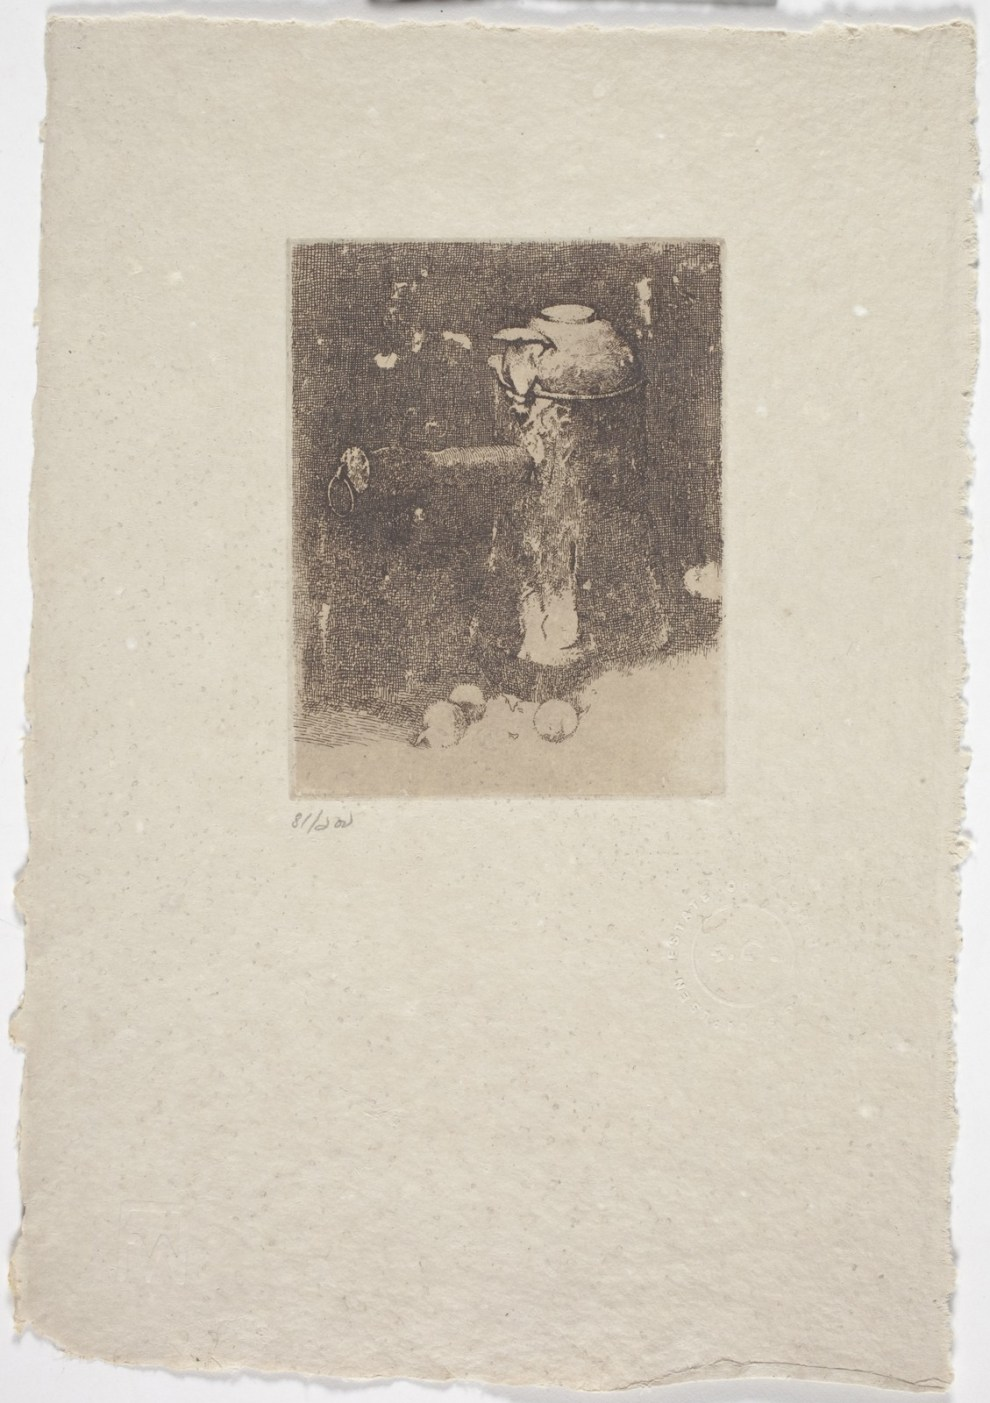 Fig. 26. Still Life with Copper and Onions, etching, 4-1/4 x 3-1/2 in. Butler Institute of American Art,  Youngstown, OH  Carlsen's brief experiment with etching produced these still-life image s, which were printed posthumously.